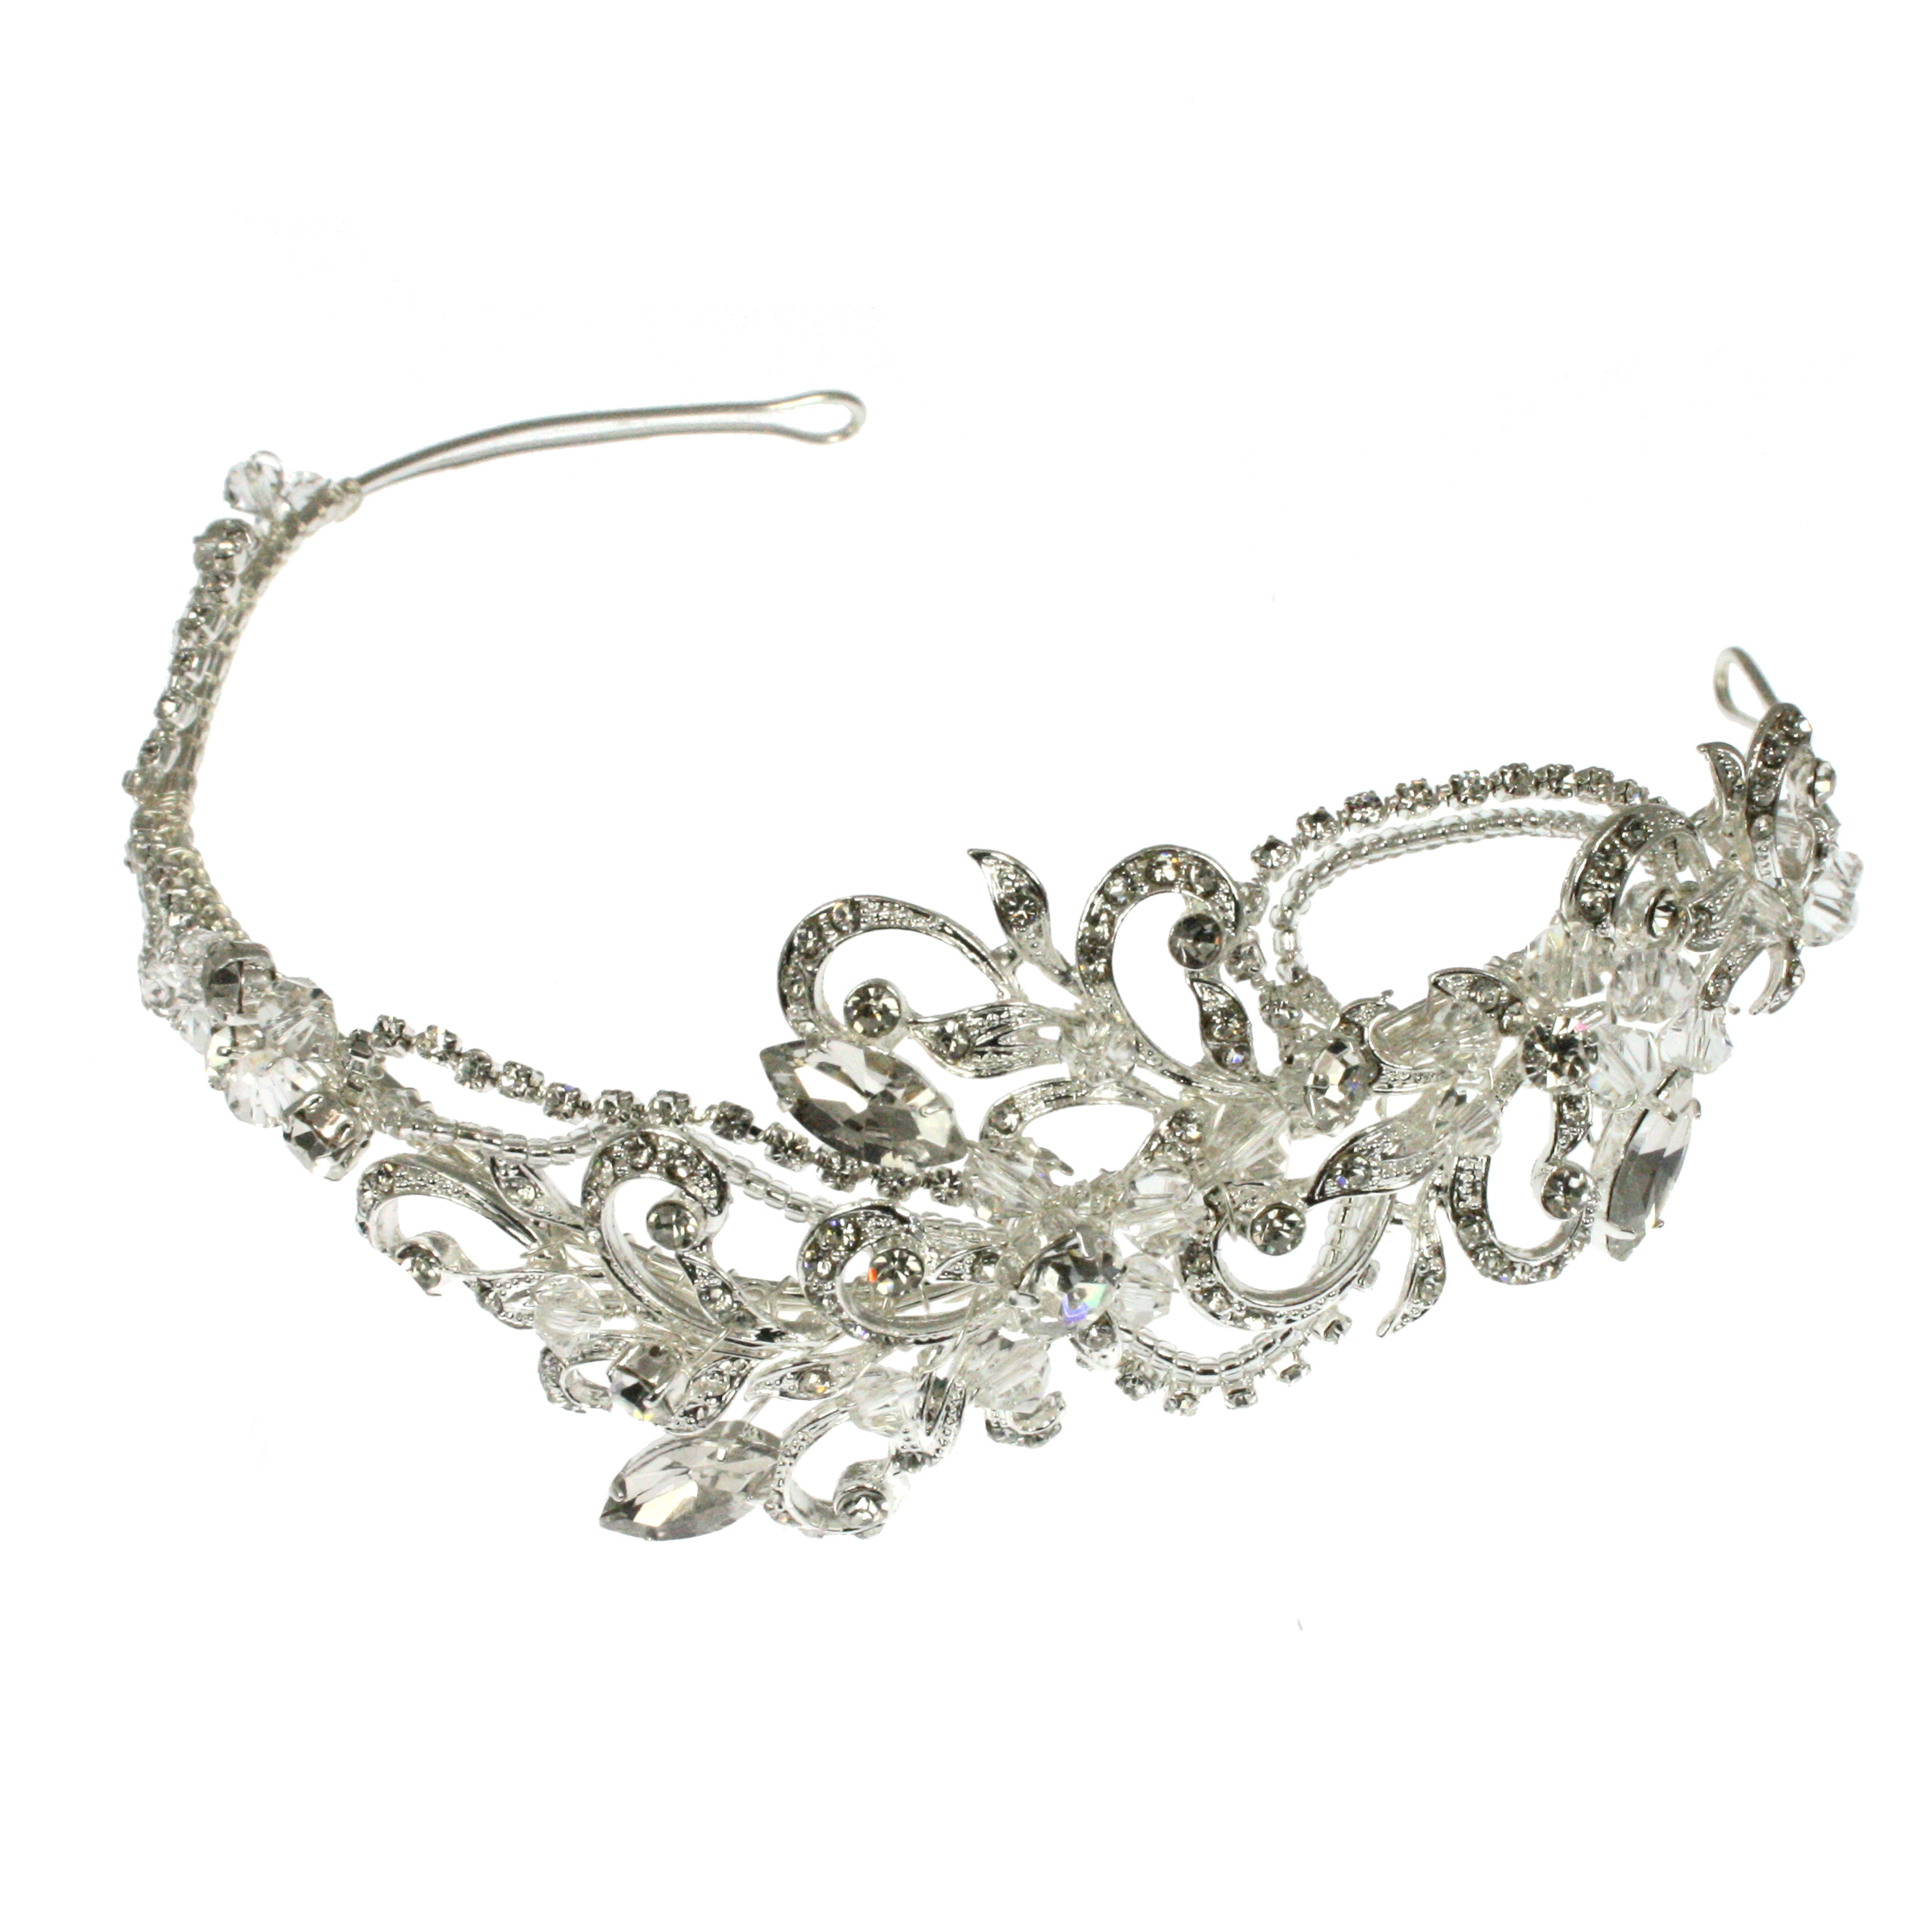 LT620 wedding headband